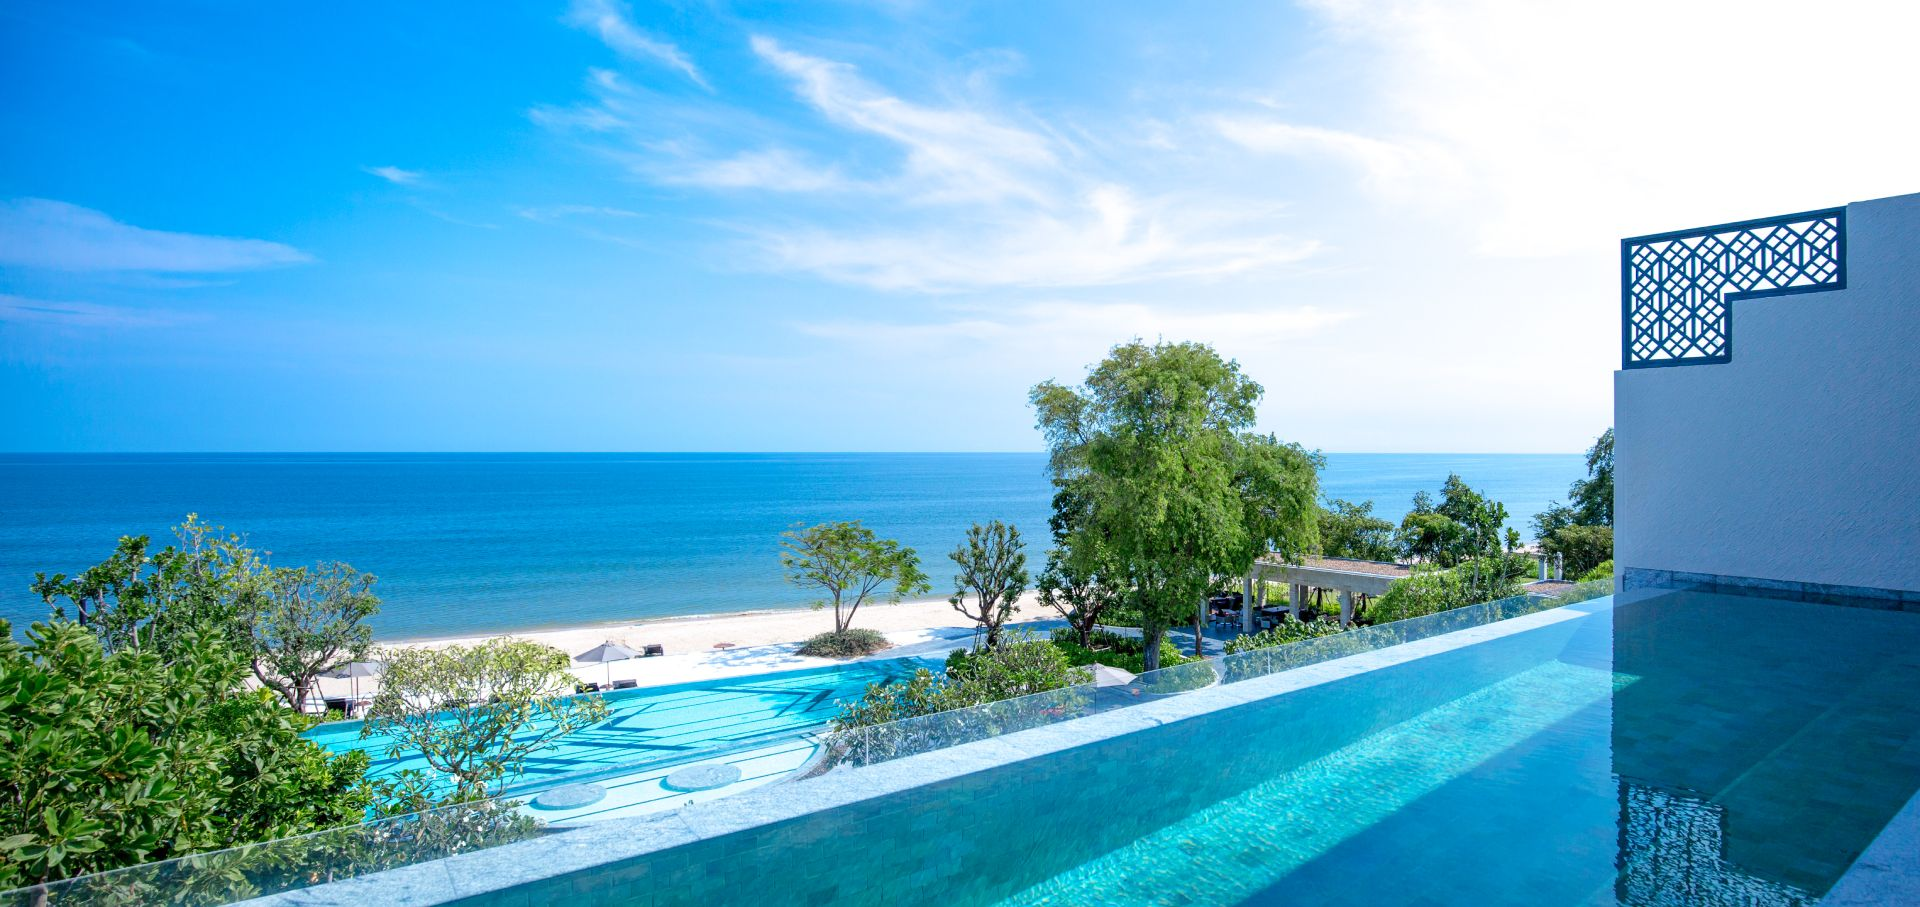 1-Beachfront-Penthouse-Baba-Beach-Club-HuaHin-Luxury-Hotel-Cha-Am-Beach-Resort